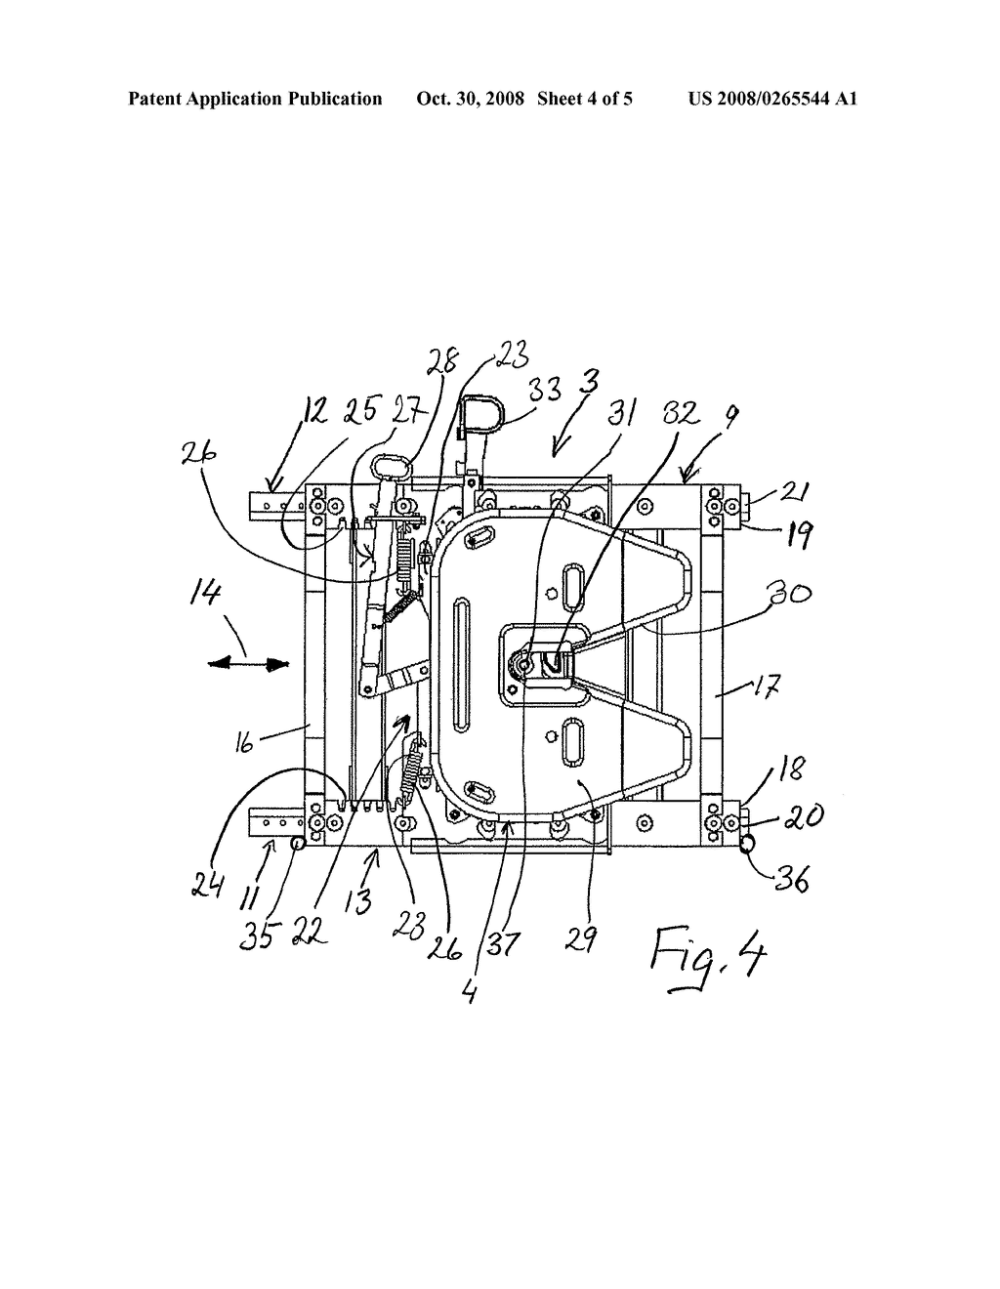 medium resolution of fifth wheel assembly for coupling a trailer to a truck tractor and a method for operating said assembly diagram schematic and image 05